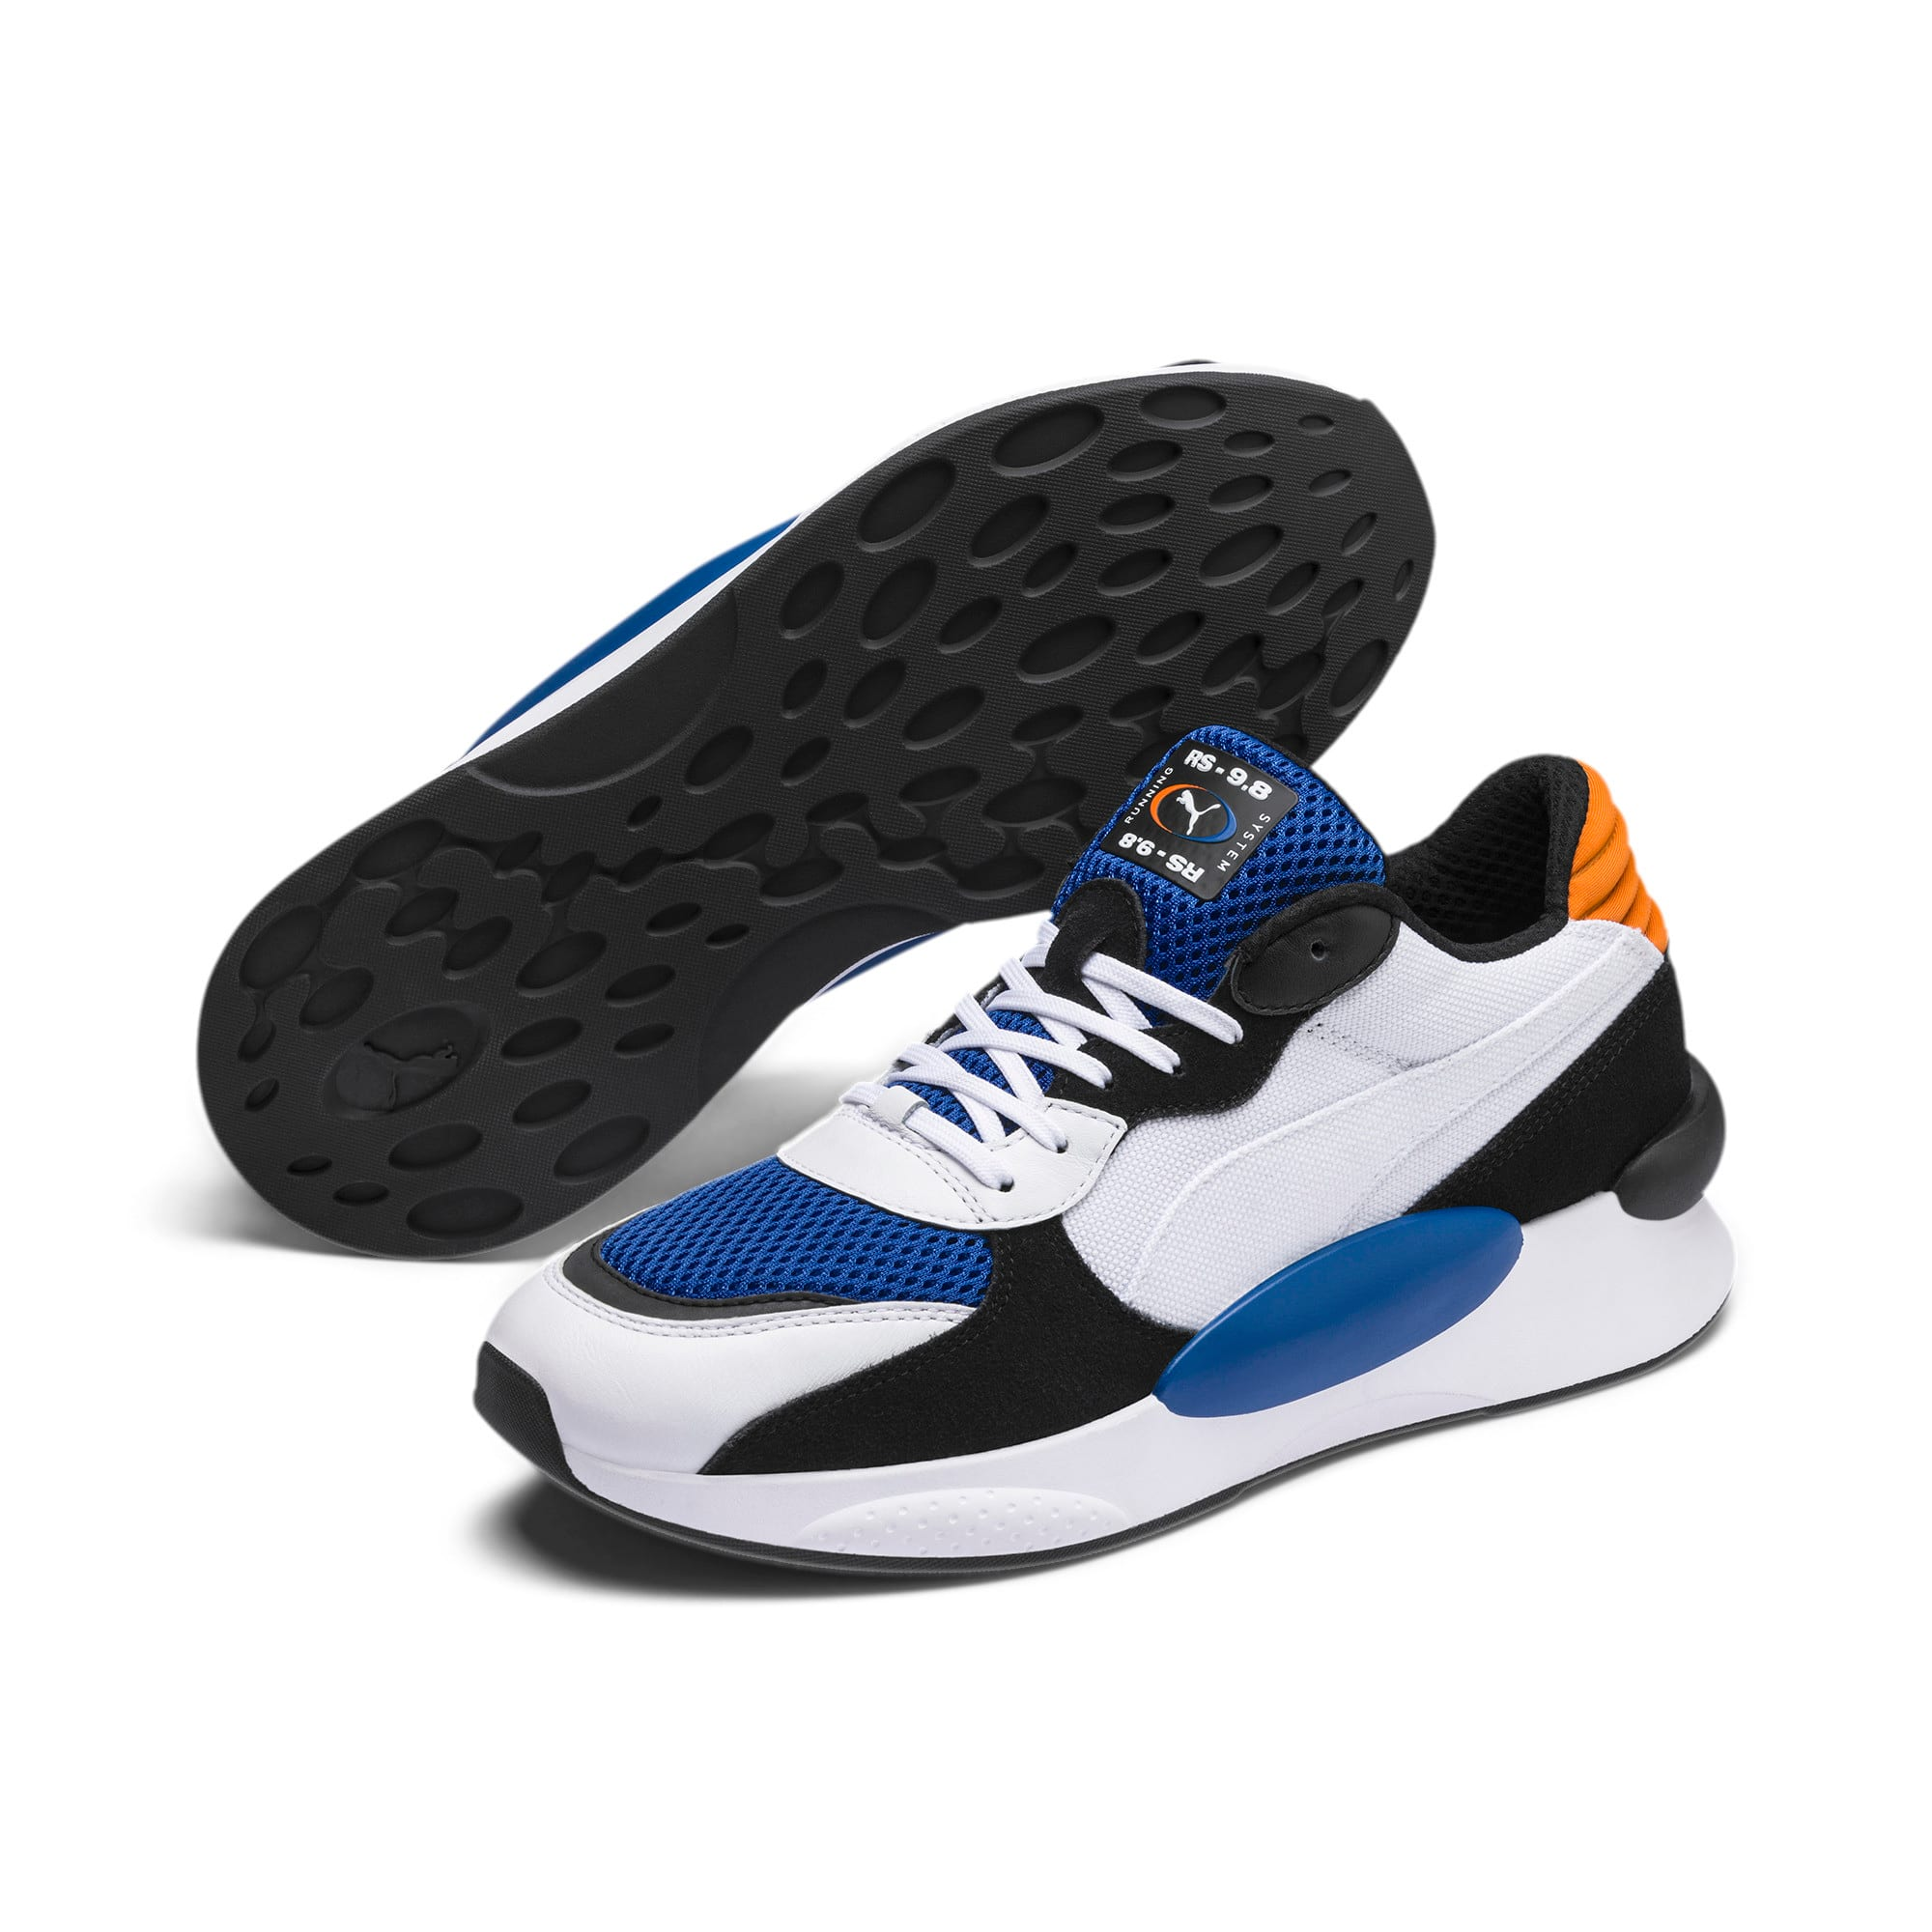 Thumbnail 3 of RS 9.8 Cosmic Trainers, Puma White-Galaxy Blue, medium